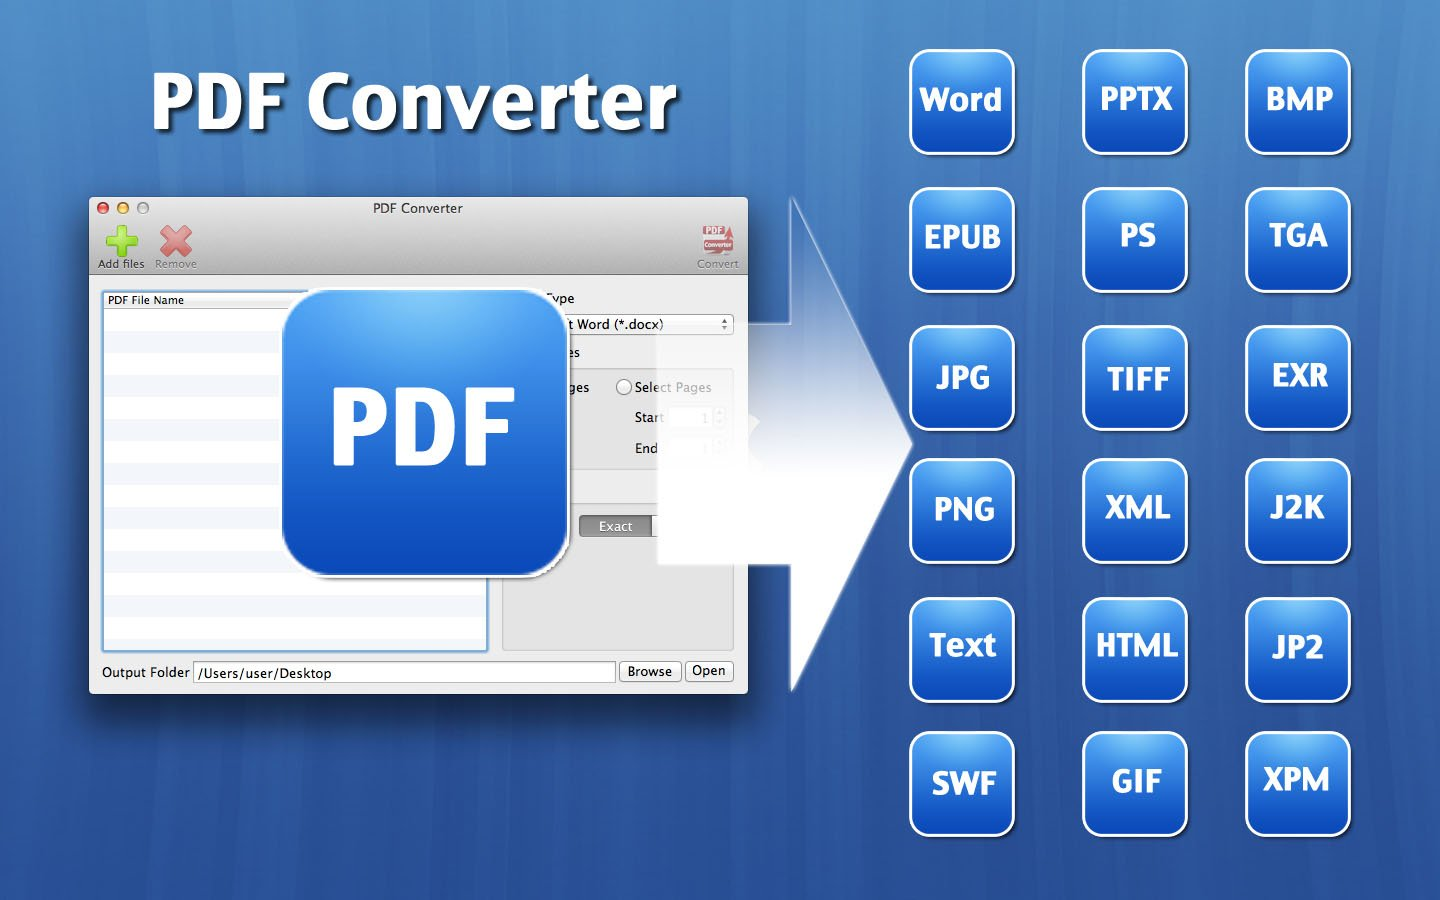 convert-image-to-pdf-how-to